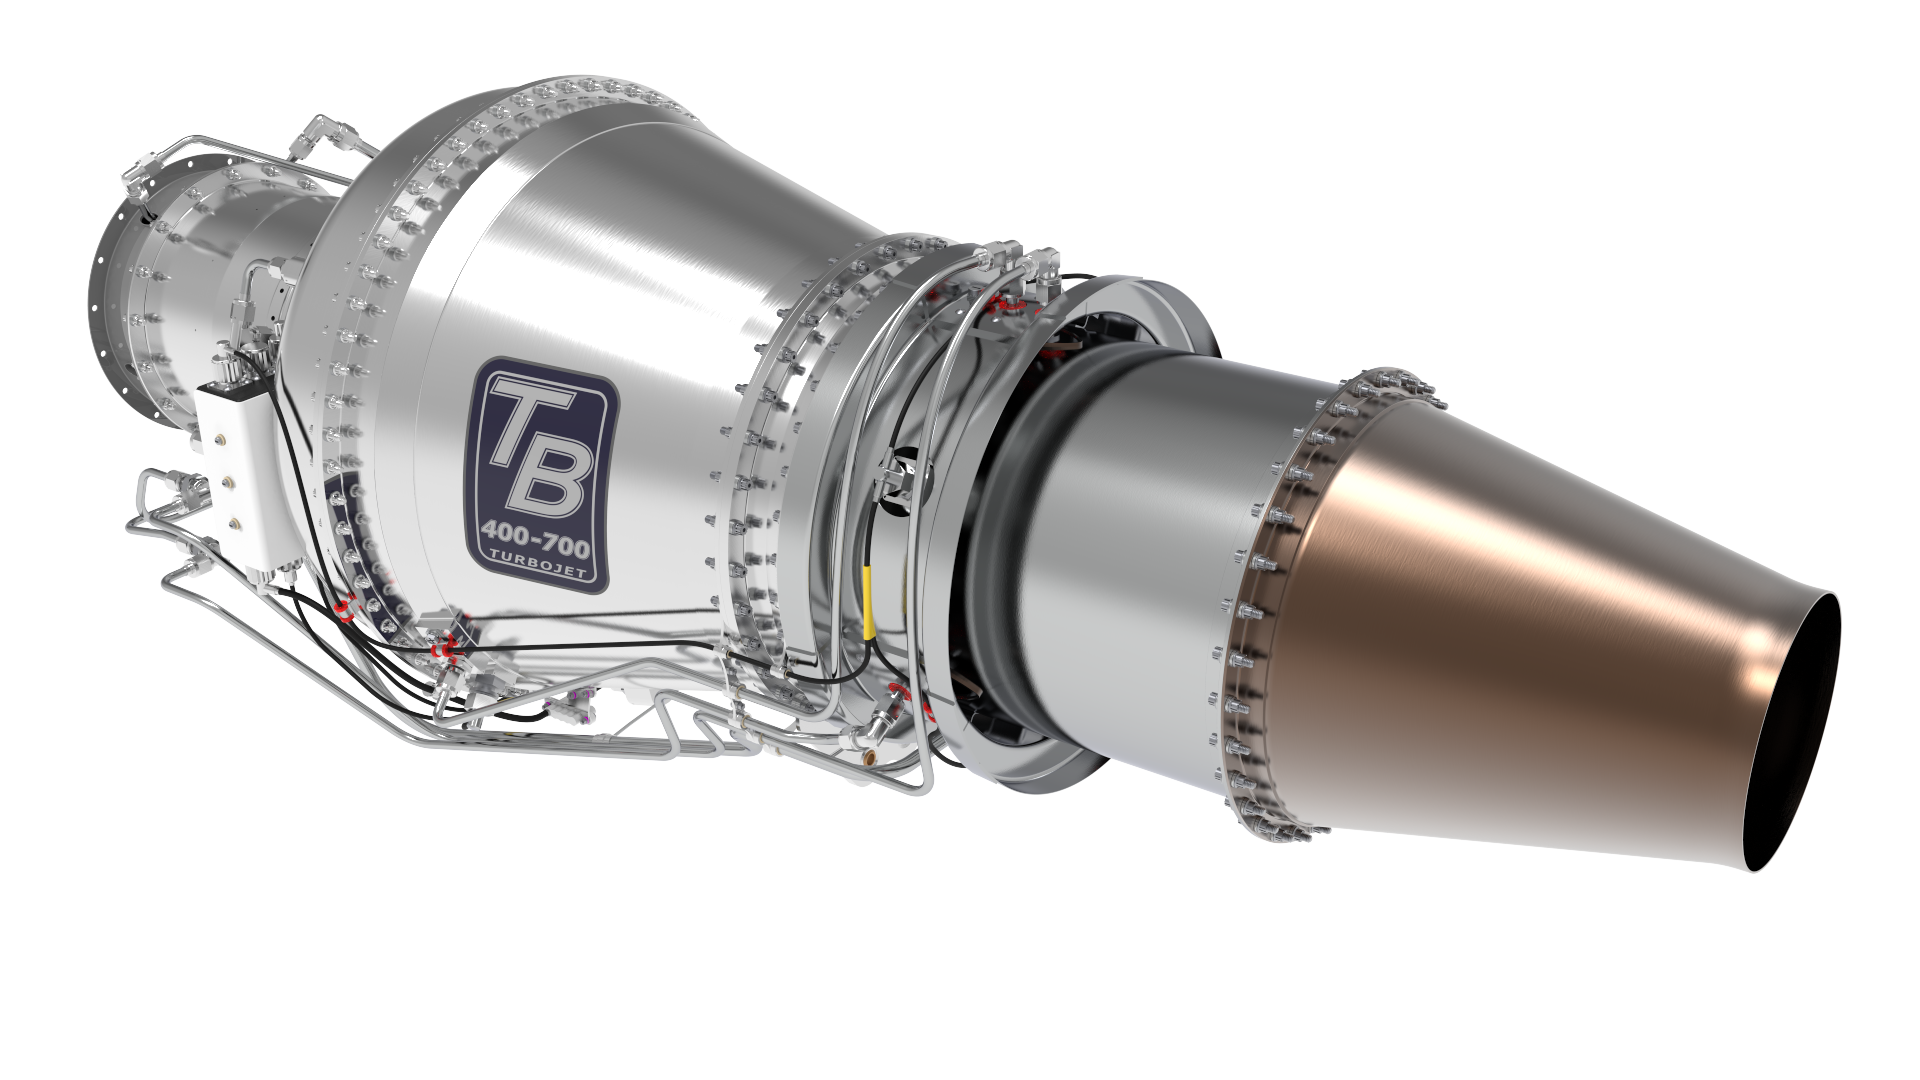 Jet Engine_High Res Renders 1.14